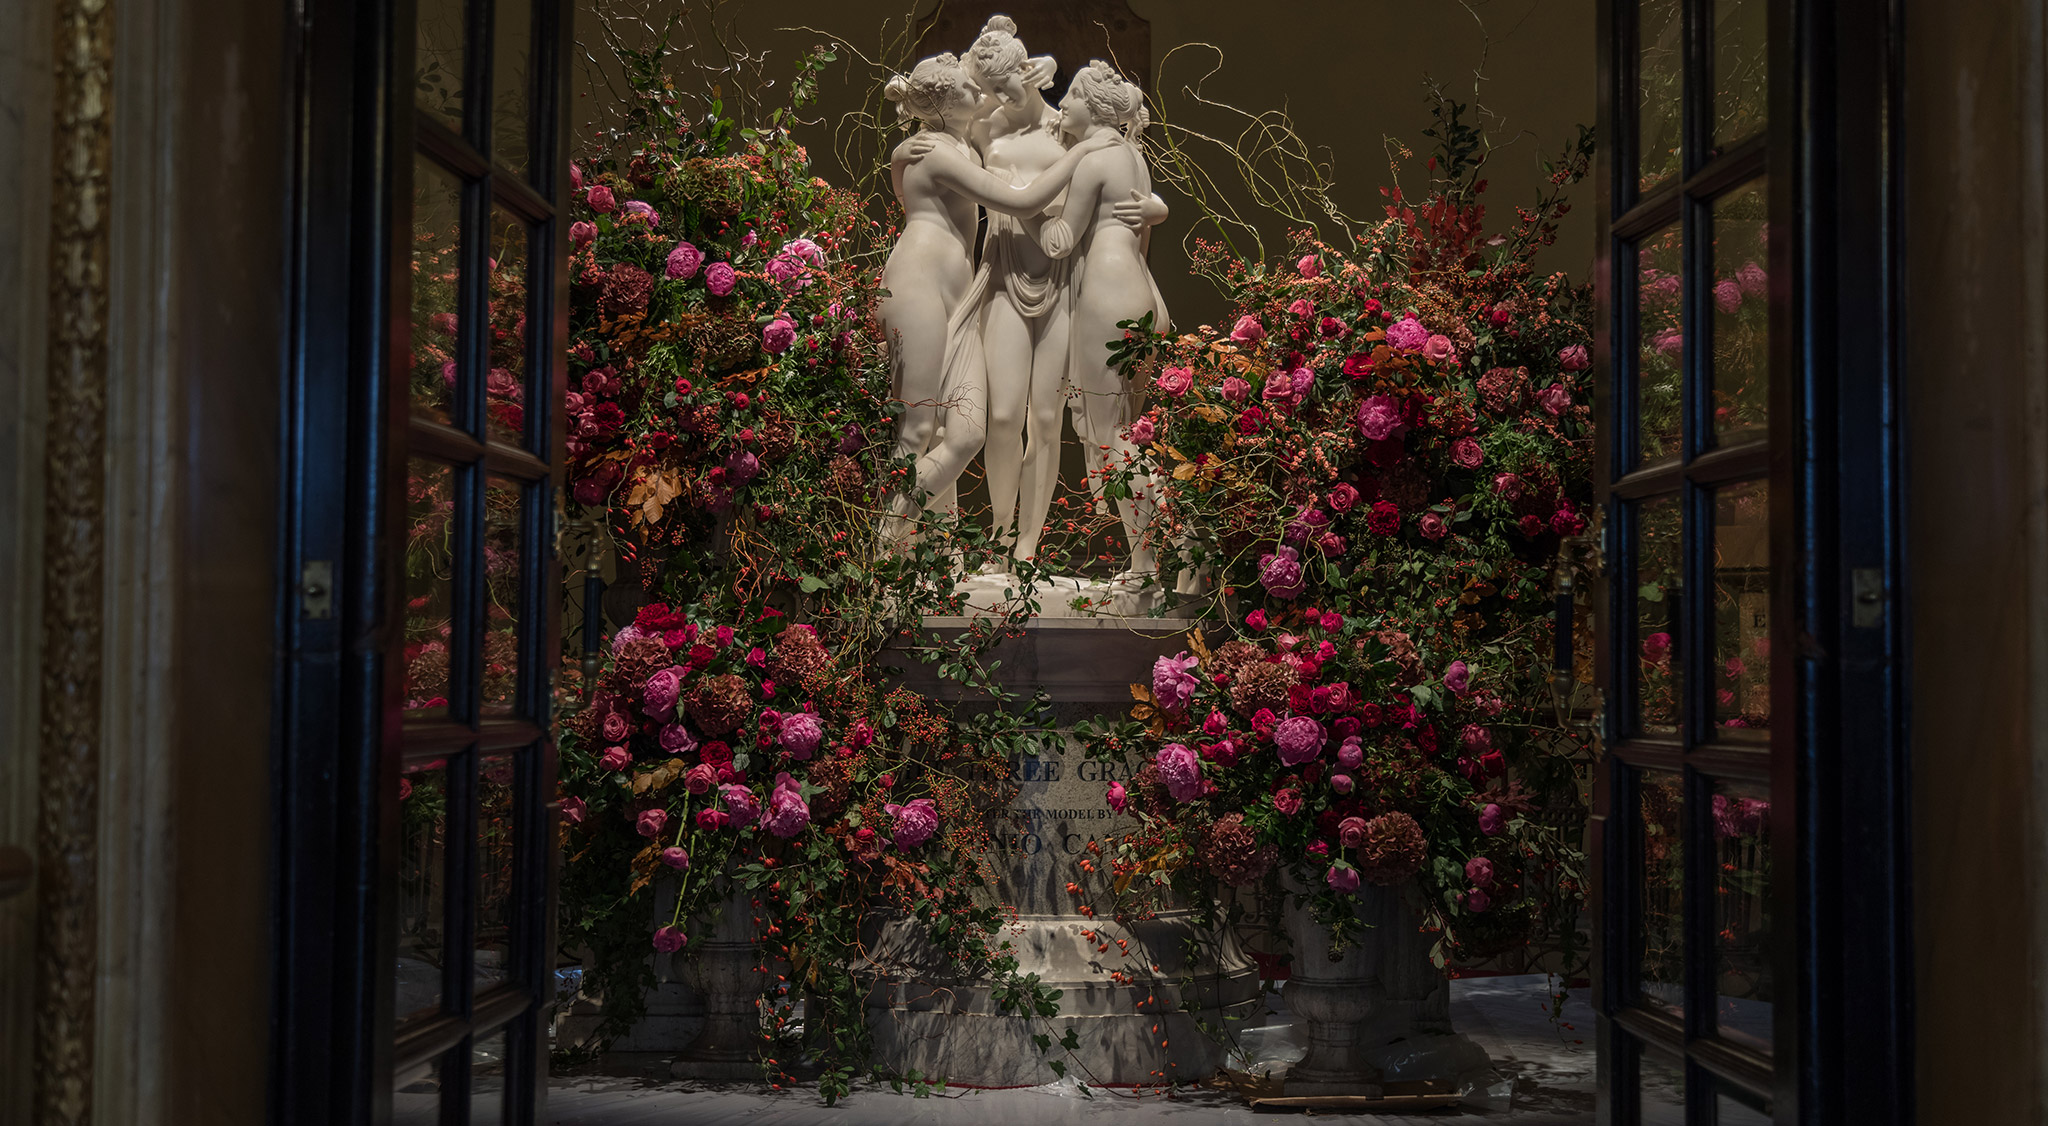 Mcqueens Flowers floral display with Greek statues